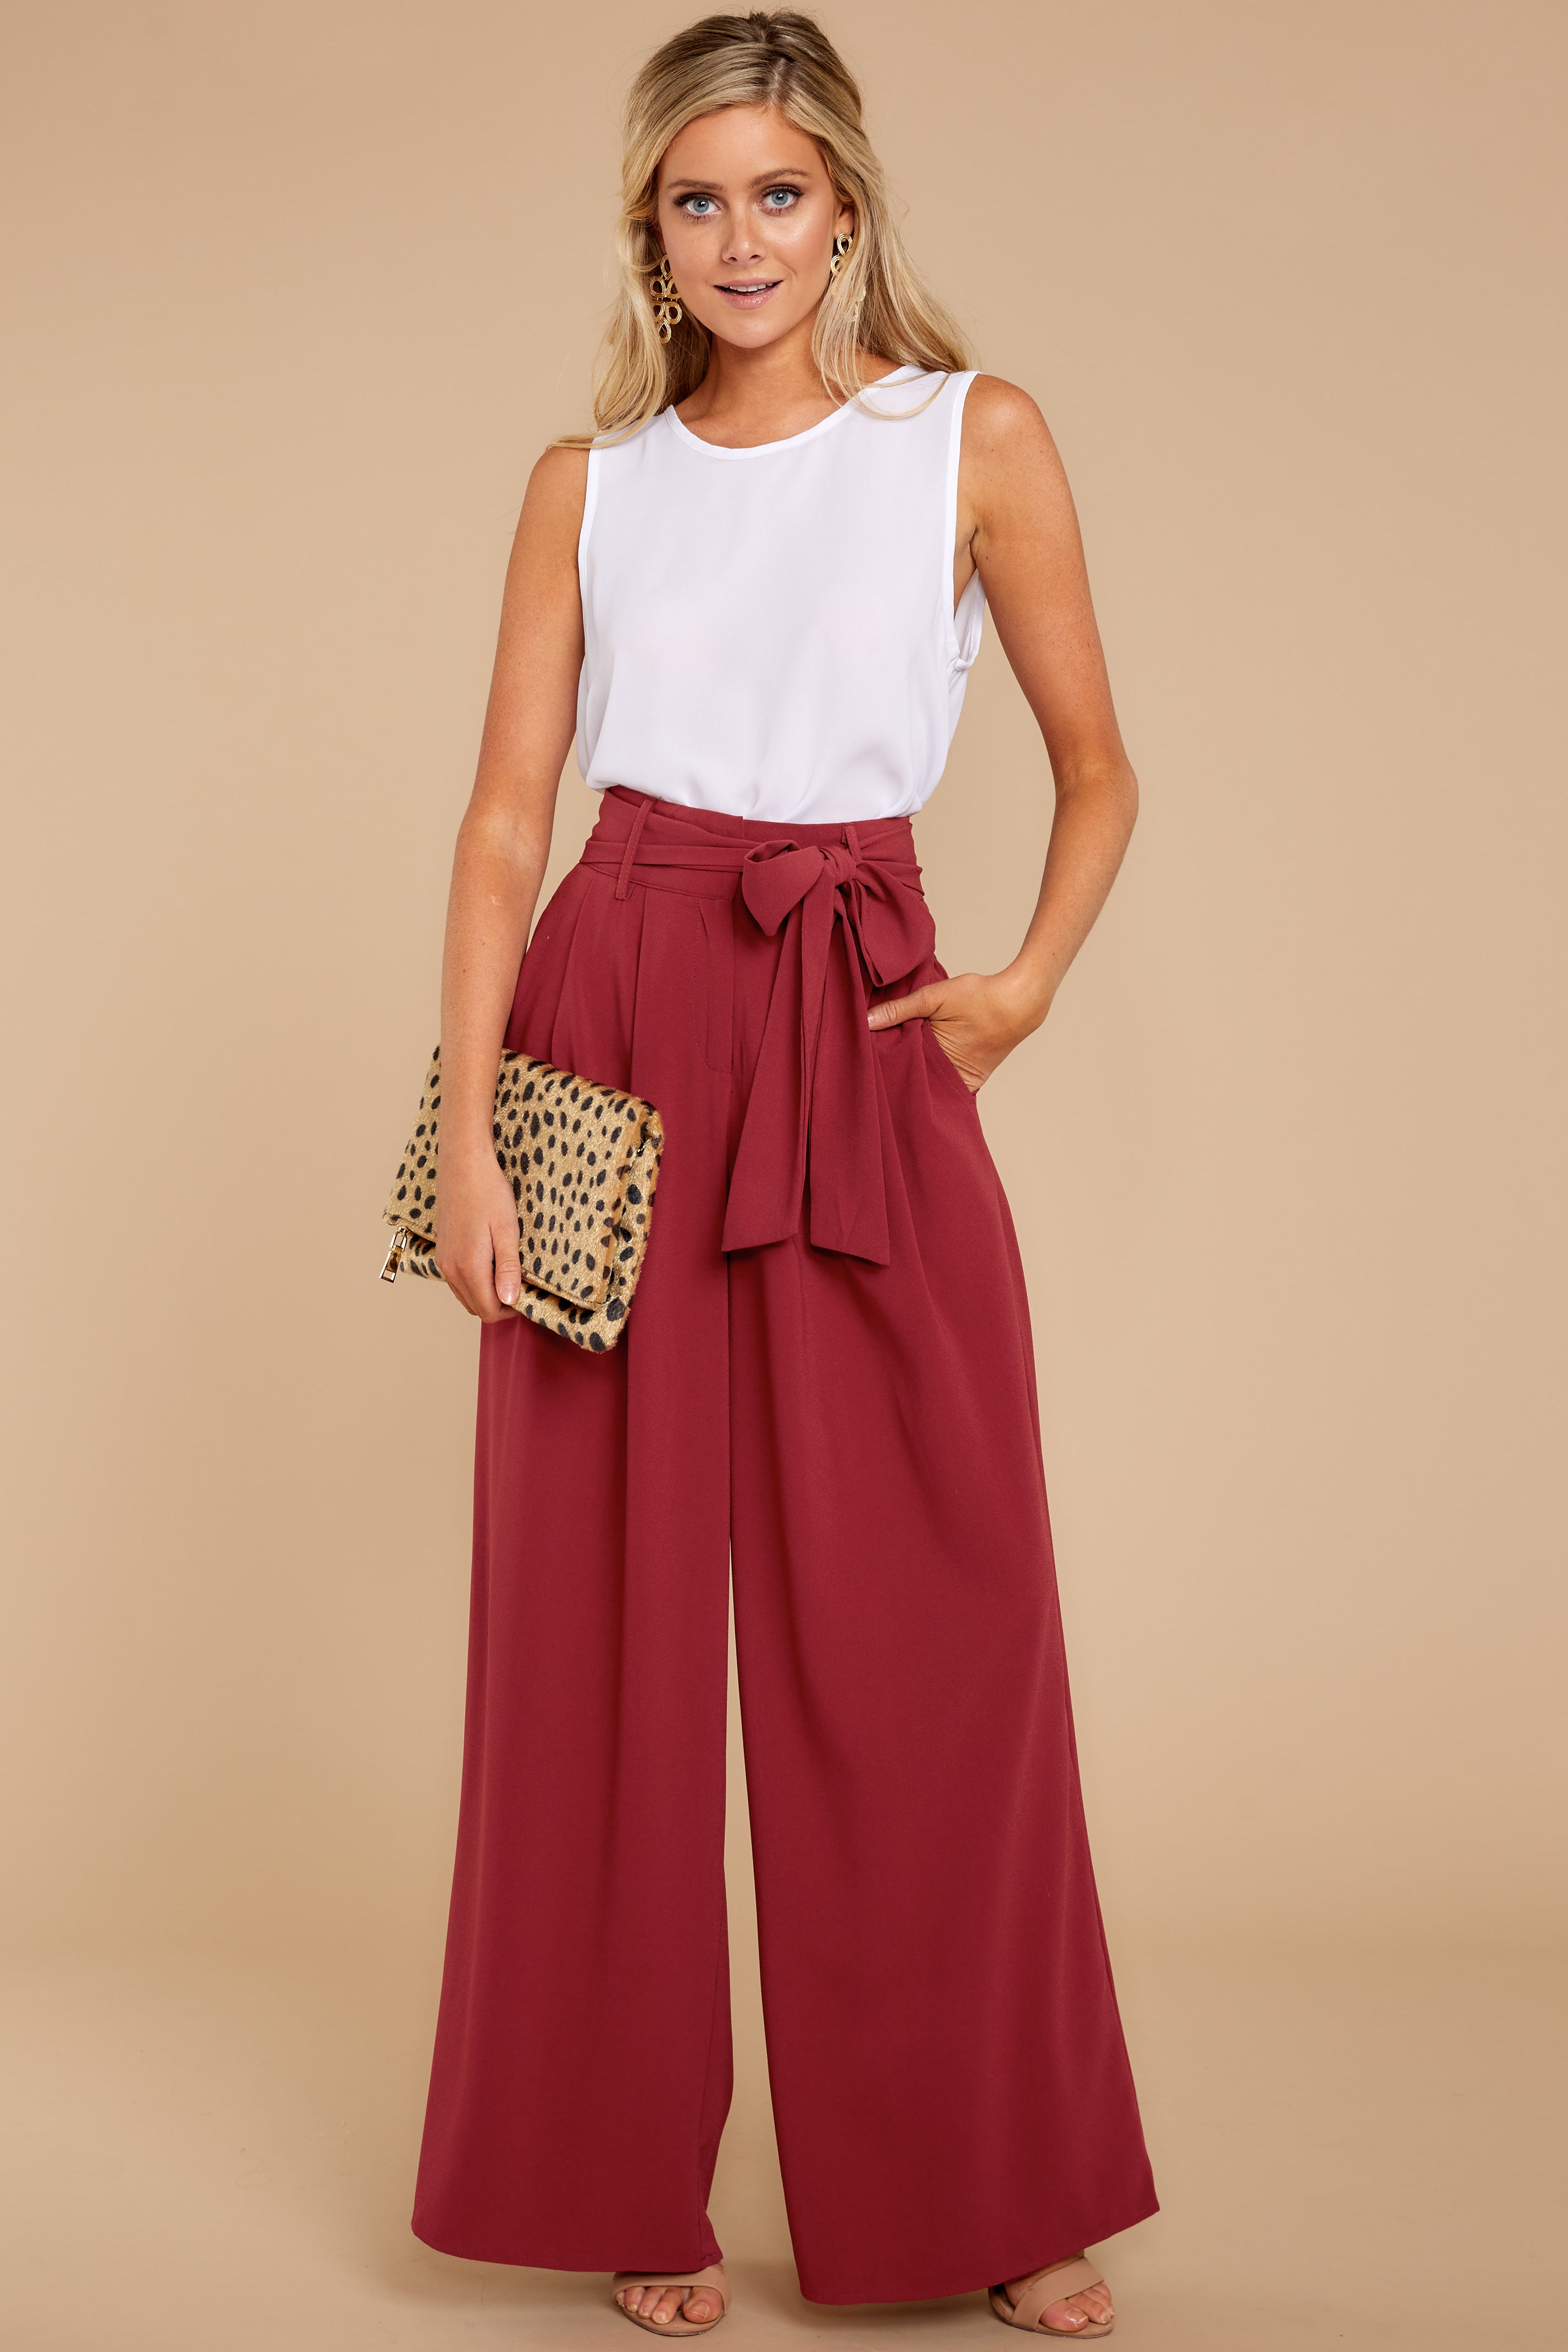 d63e2a3e3af8 Elegant Red Palazzo Pants - Trendy Wide Leg Pants - Pants - $42.00 ...